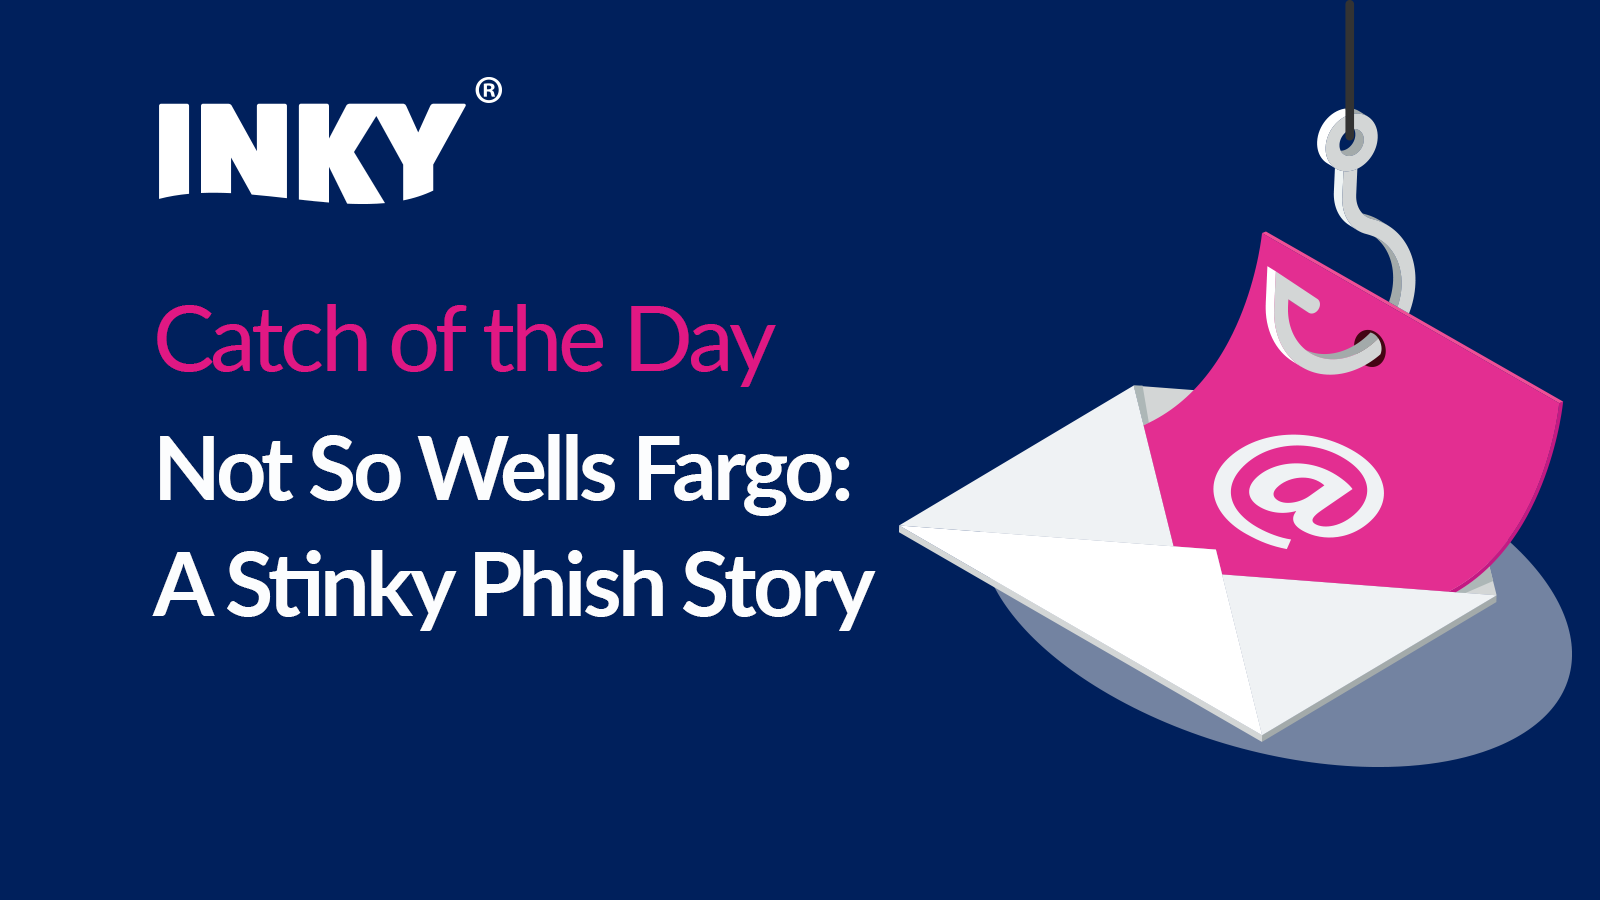 Not So Wells Fargo: A Stinky Phish Story